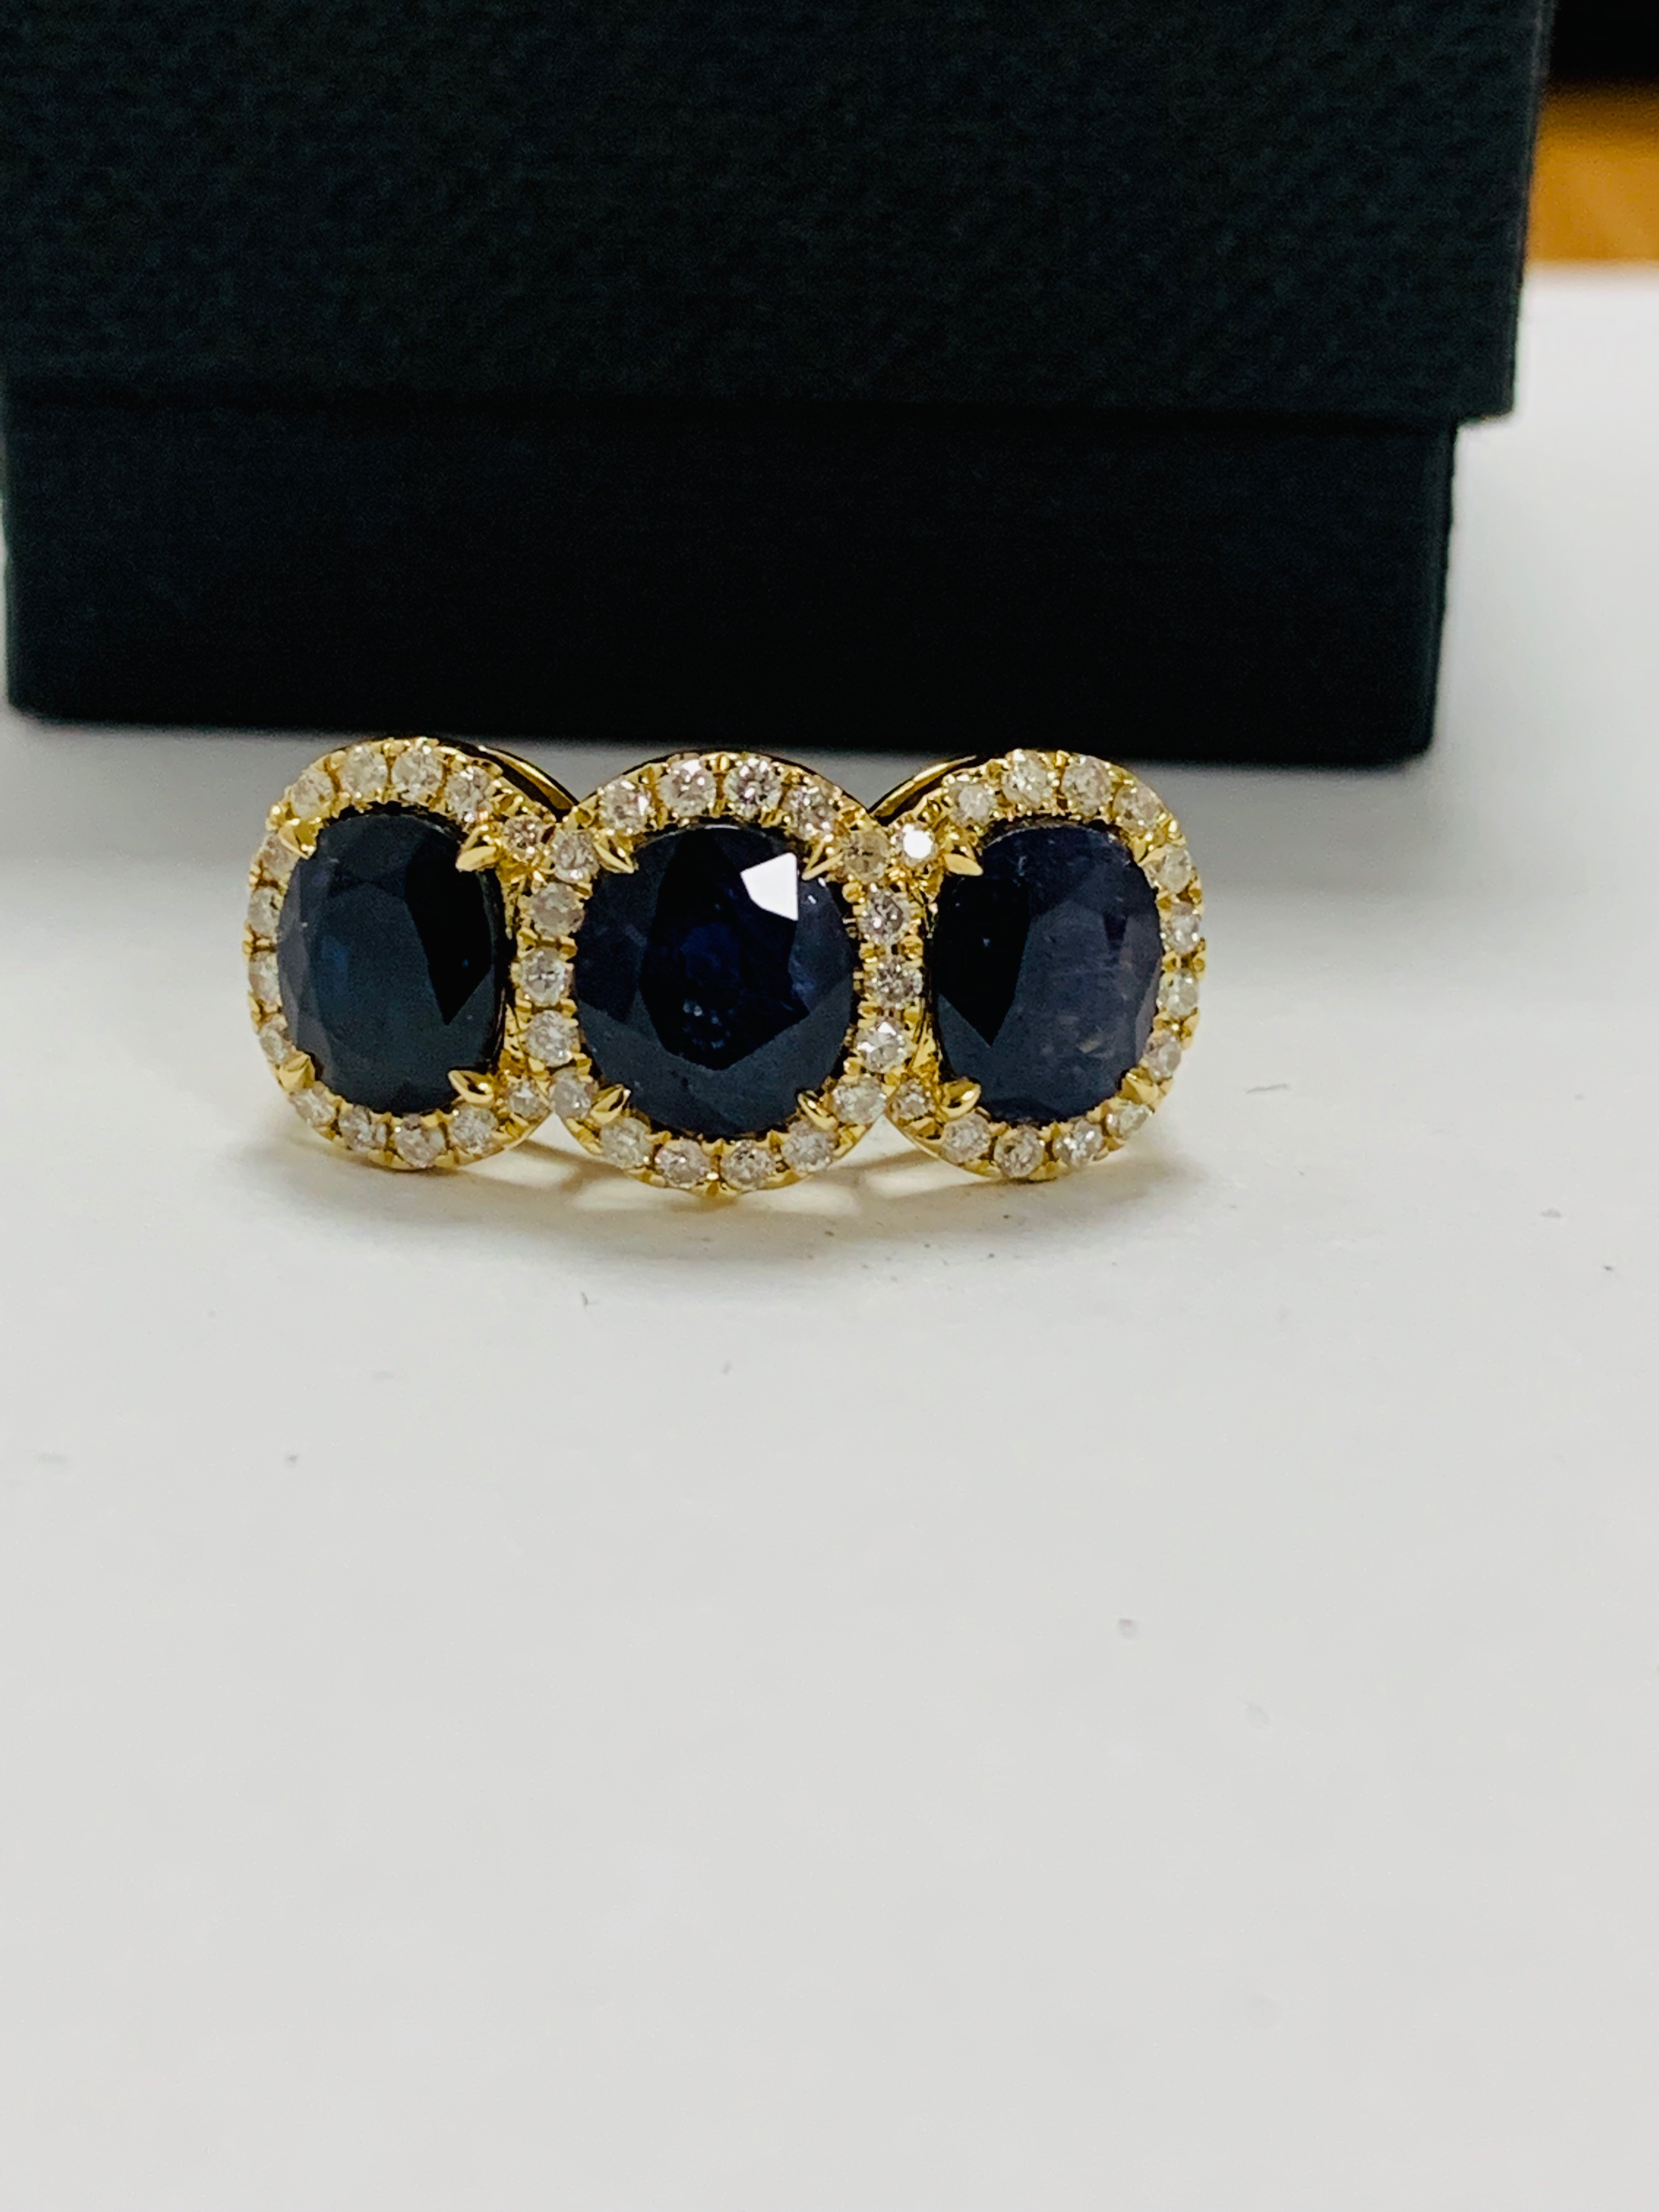 18ct yellow gold sapphire and diamond ring - Image 10 of 12